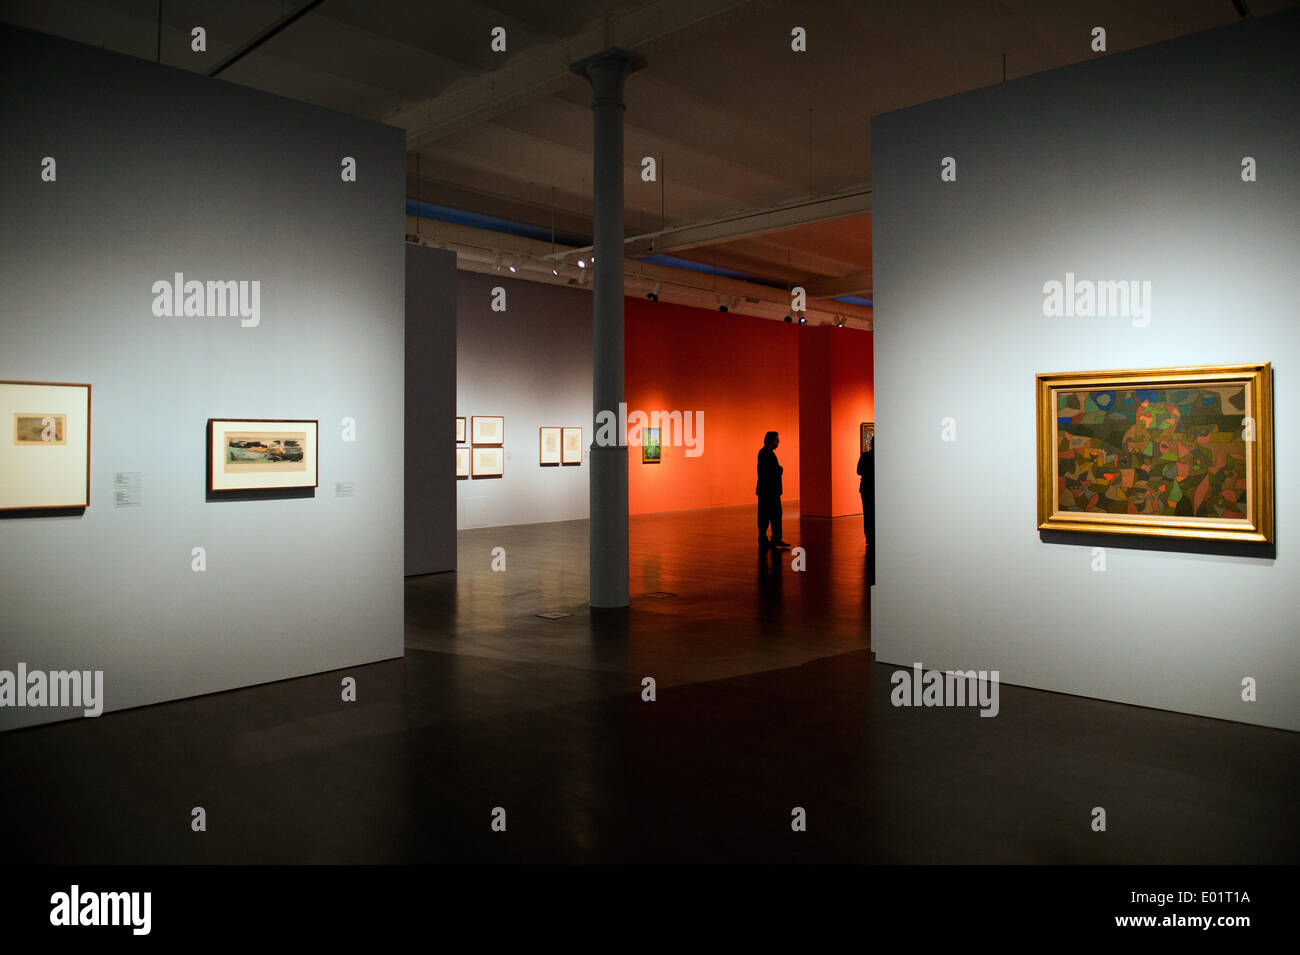 Dresden, Germany. 29th Apr, 2014. About 140 travel pictures by painter Slevogt ((1868-1932, displayed on the orange walls) and Klee (1879-1940, displayed on the grey walls) are shown in the special exhibition 'To Egypt! The journeys of Max Slevogt und Paul Klee' in the Albertinum in Dresden, Germany, 29 April 2014. The exhibition of the Dresden State Art Collections runs from 30 April to 03 August 2014. Photo: Arno Burgi/dpa/Alamy Live News - Stock Image